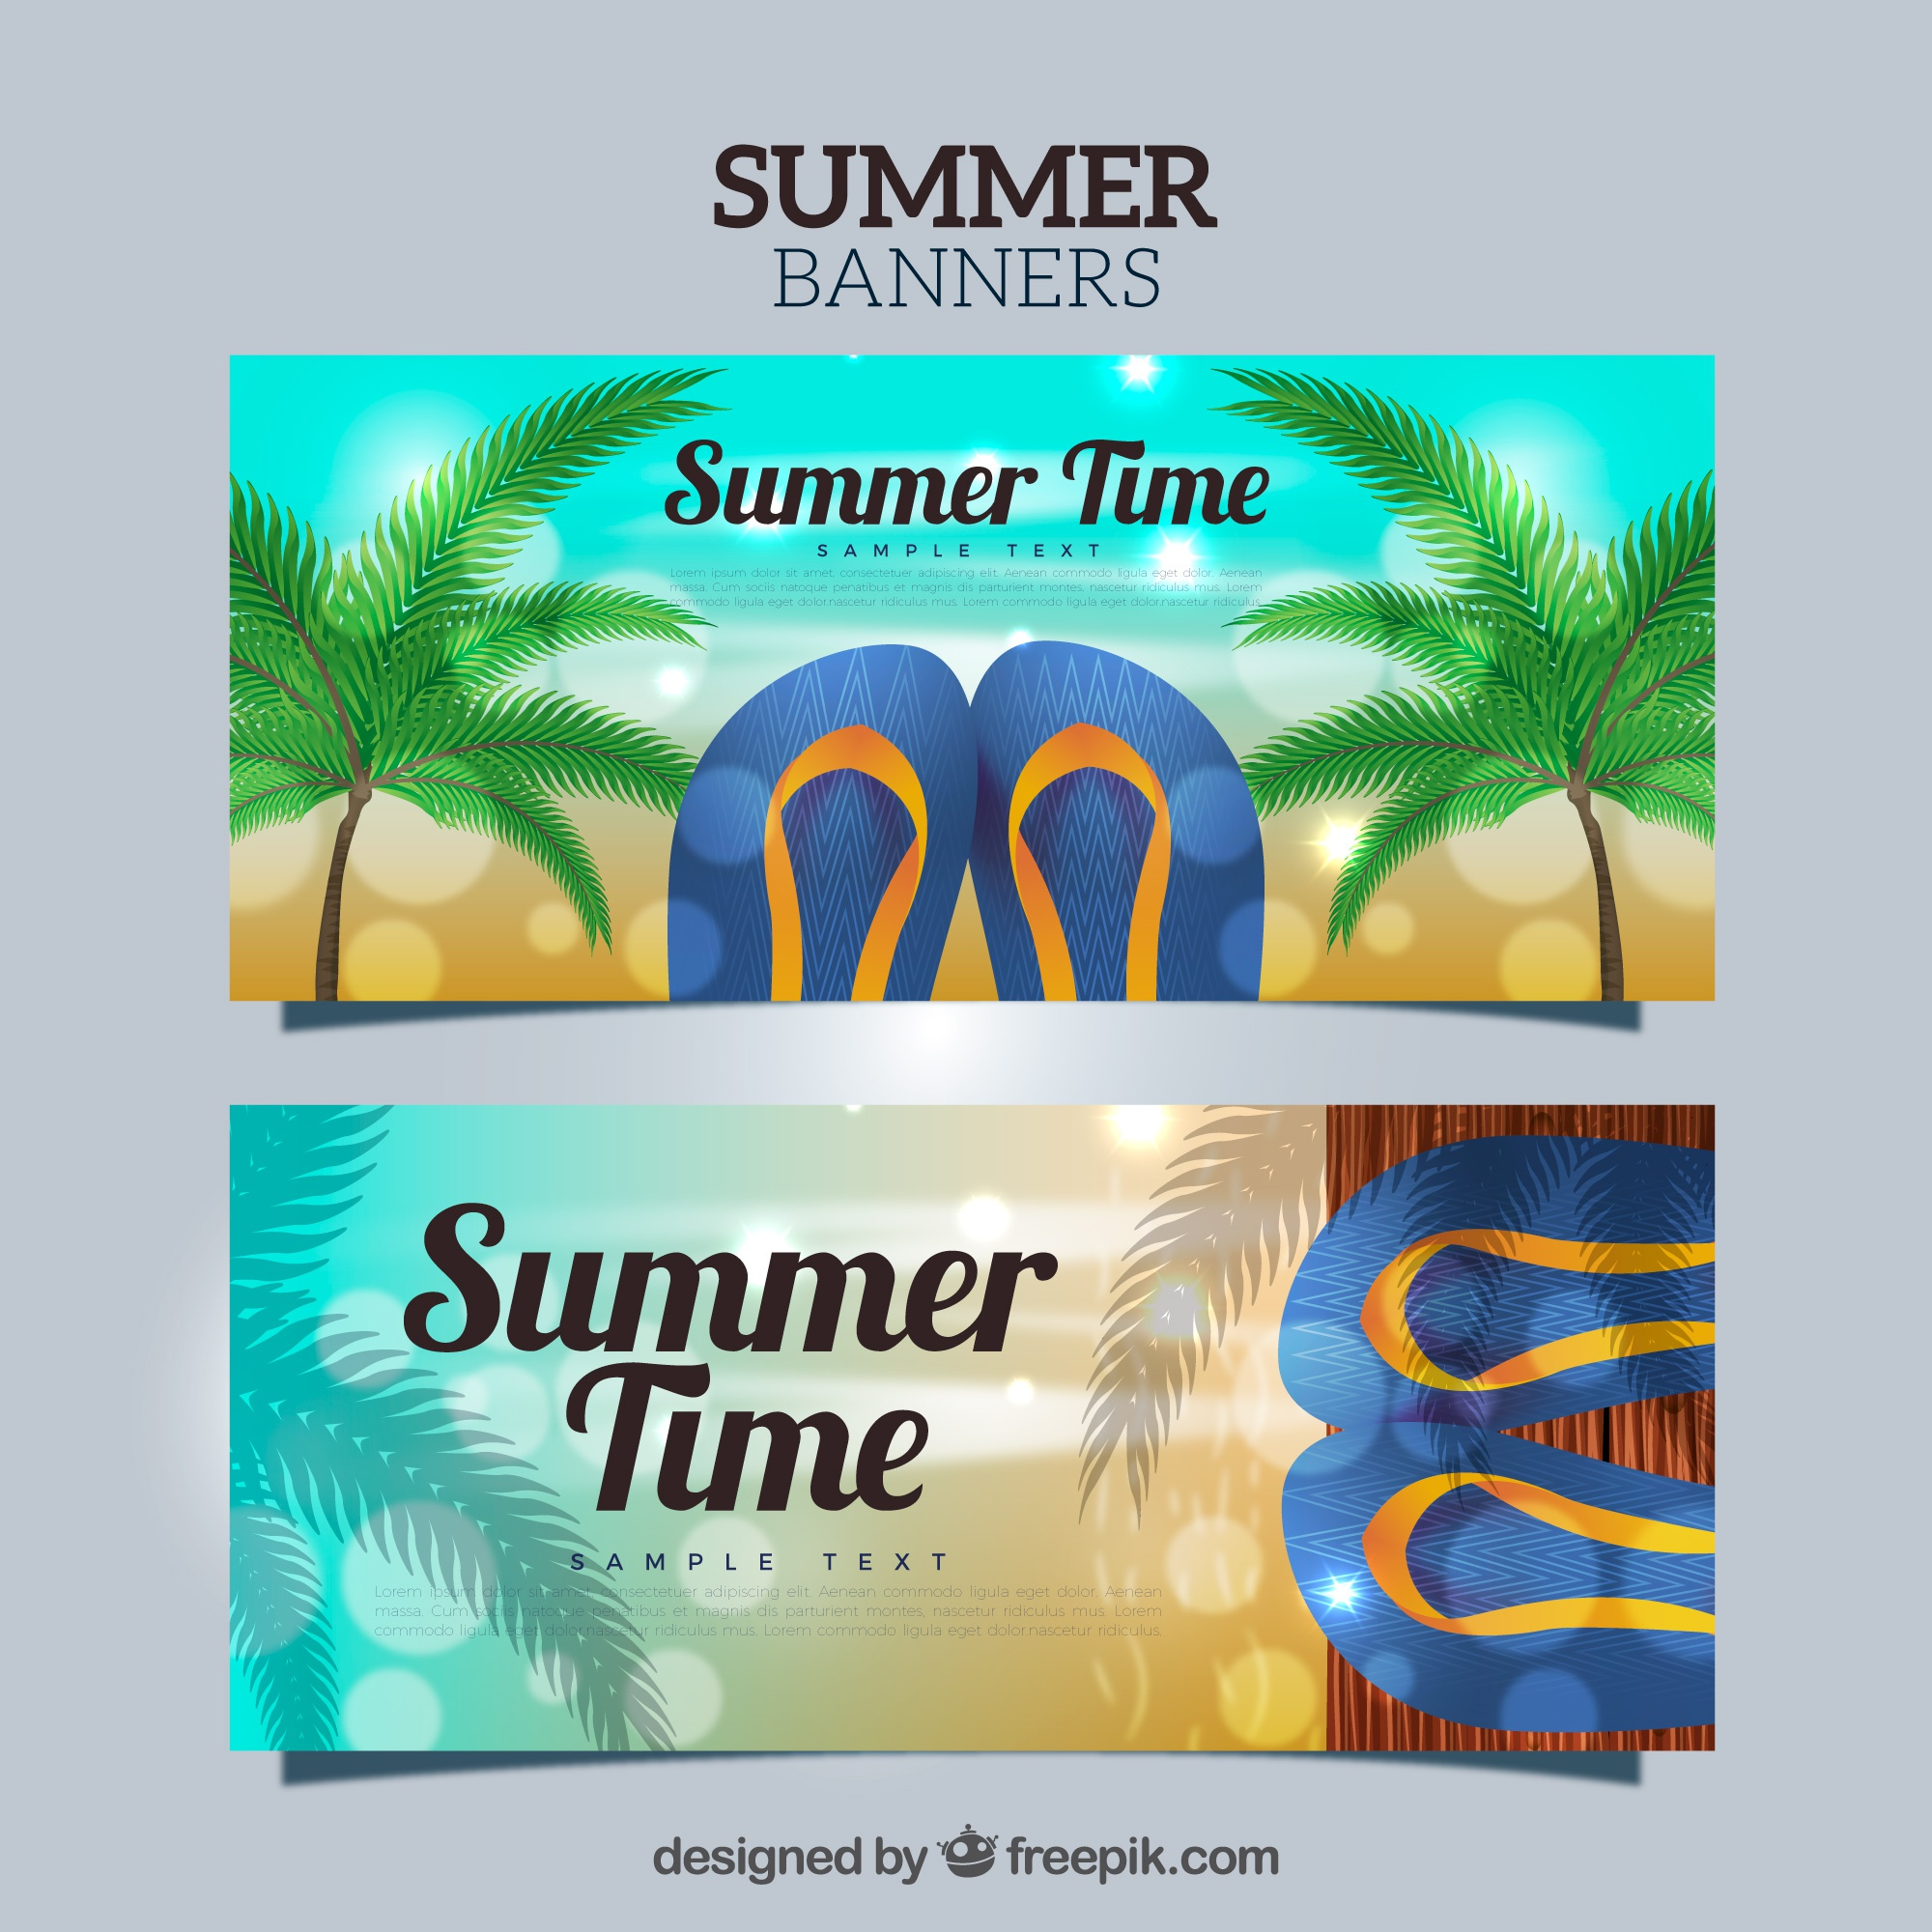 Summer banners with flip flops and palm trees